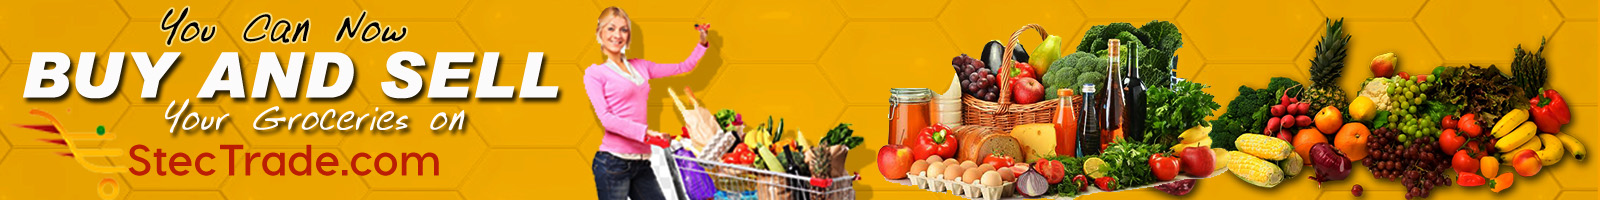 Stectrade Online Community Trading Store 1 Stop Shop In